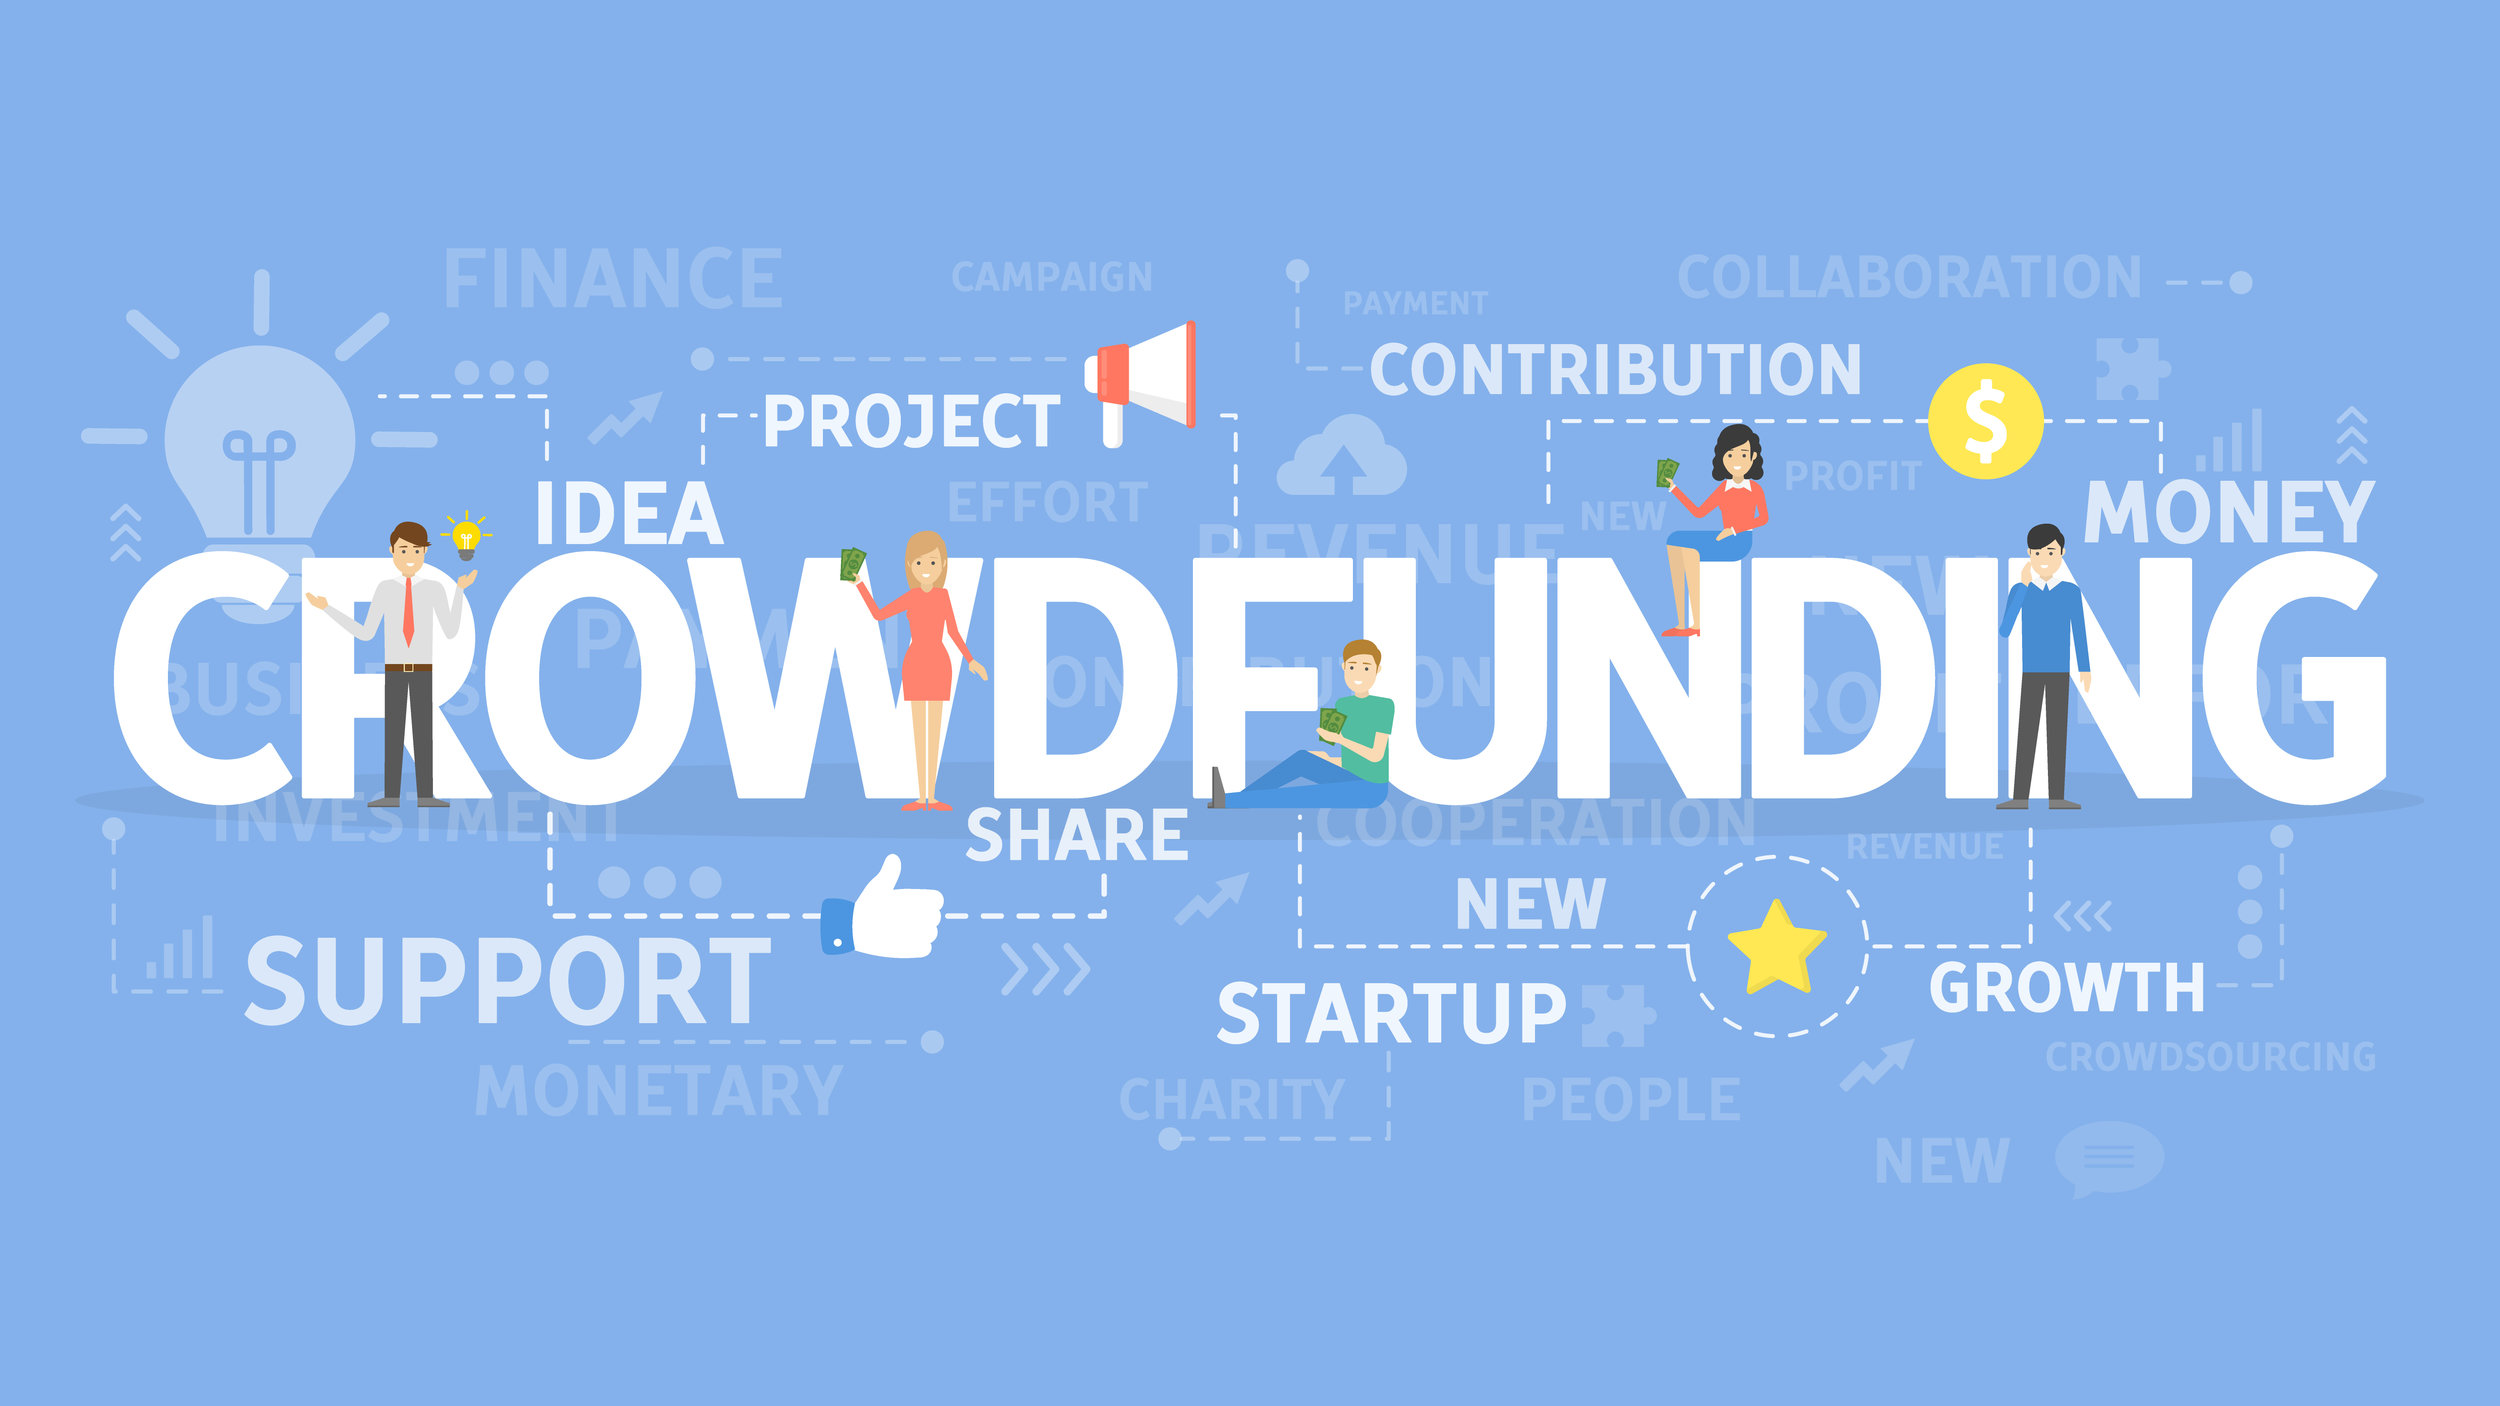 Crowdfunding Your Small Business - What You Need to Know